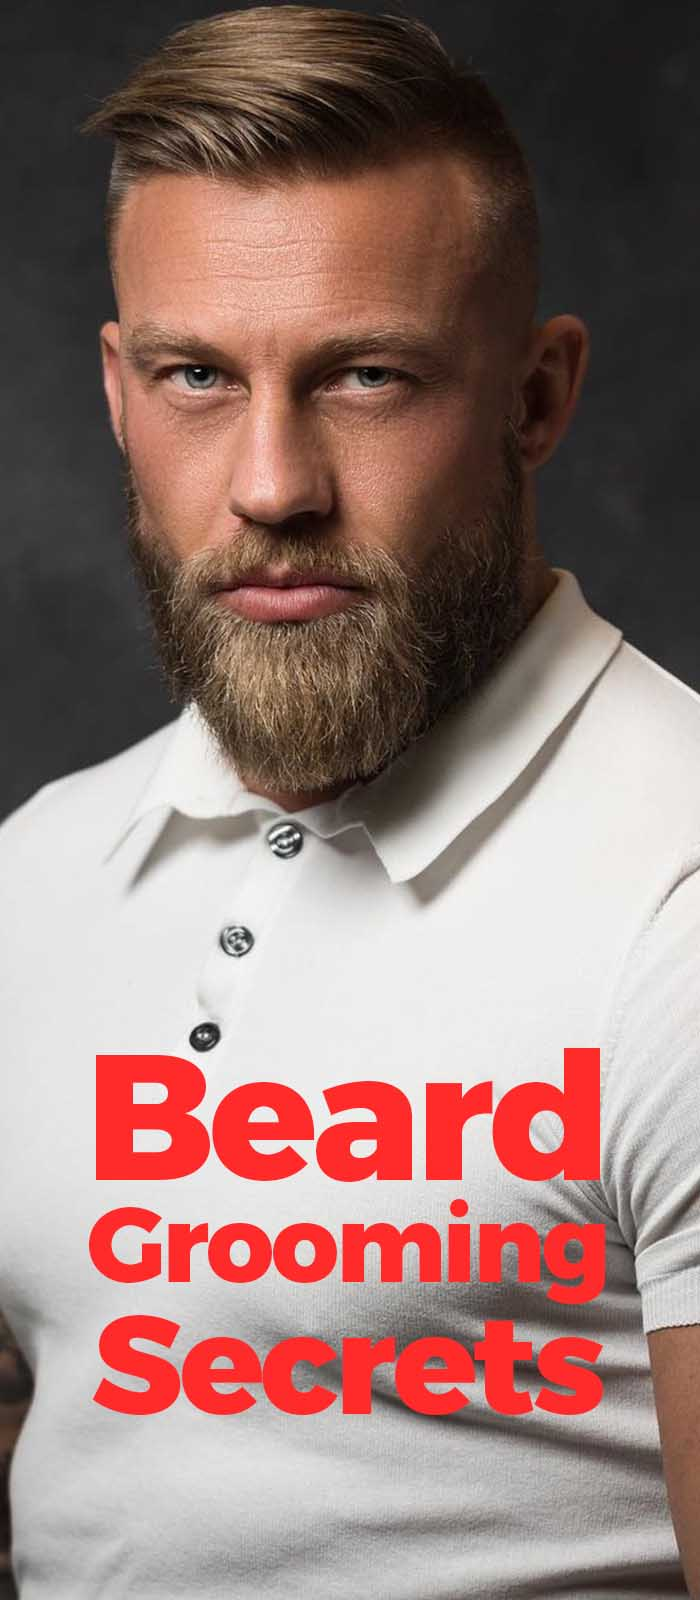 Beard Grooming Secrets For Bearded Men.